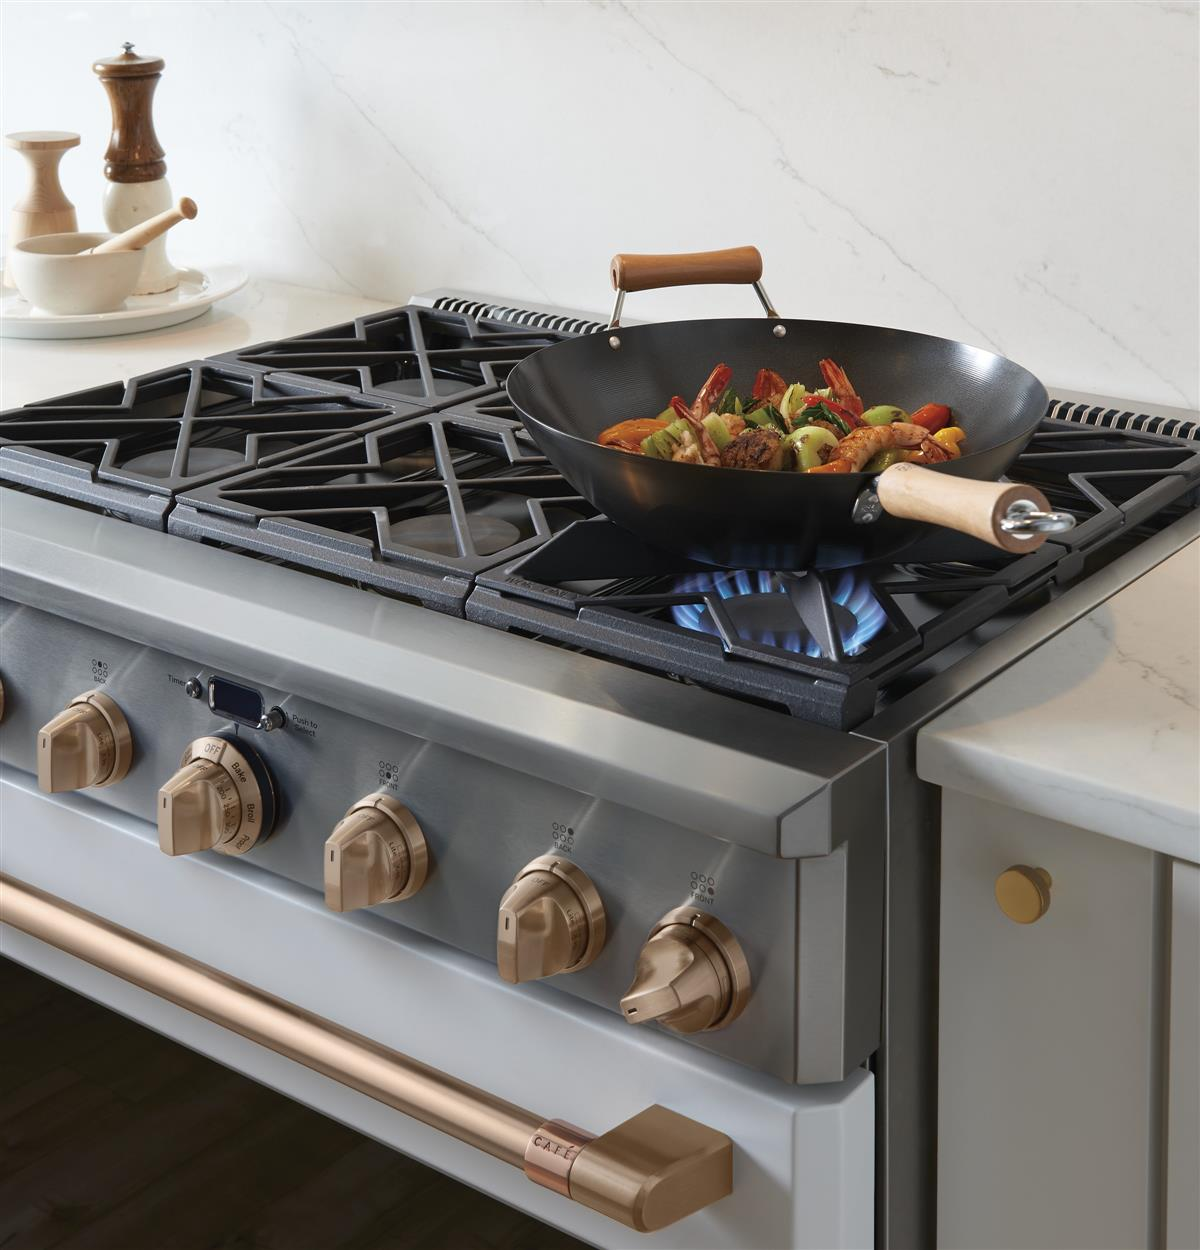 Get the most from your cookware and cooktop